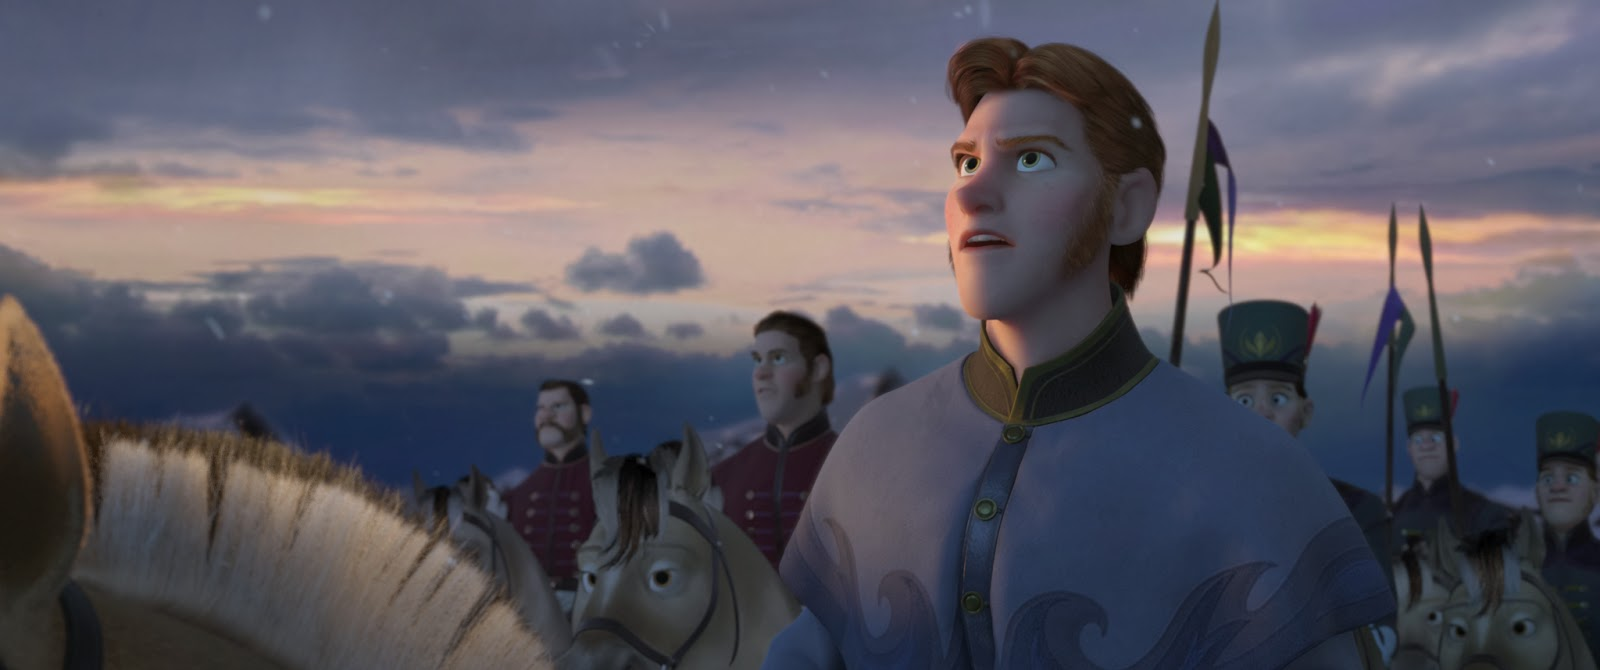 Kristoff Frozen animatedfilmreviews.filminspector.com